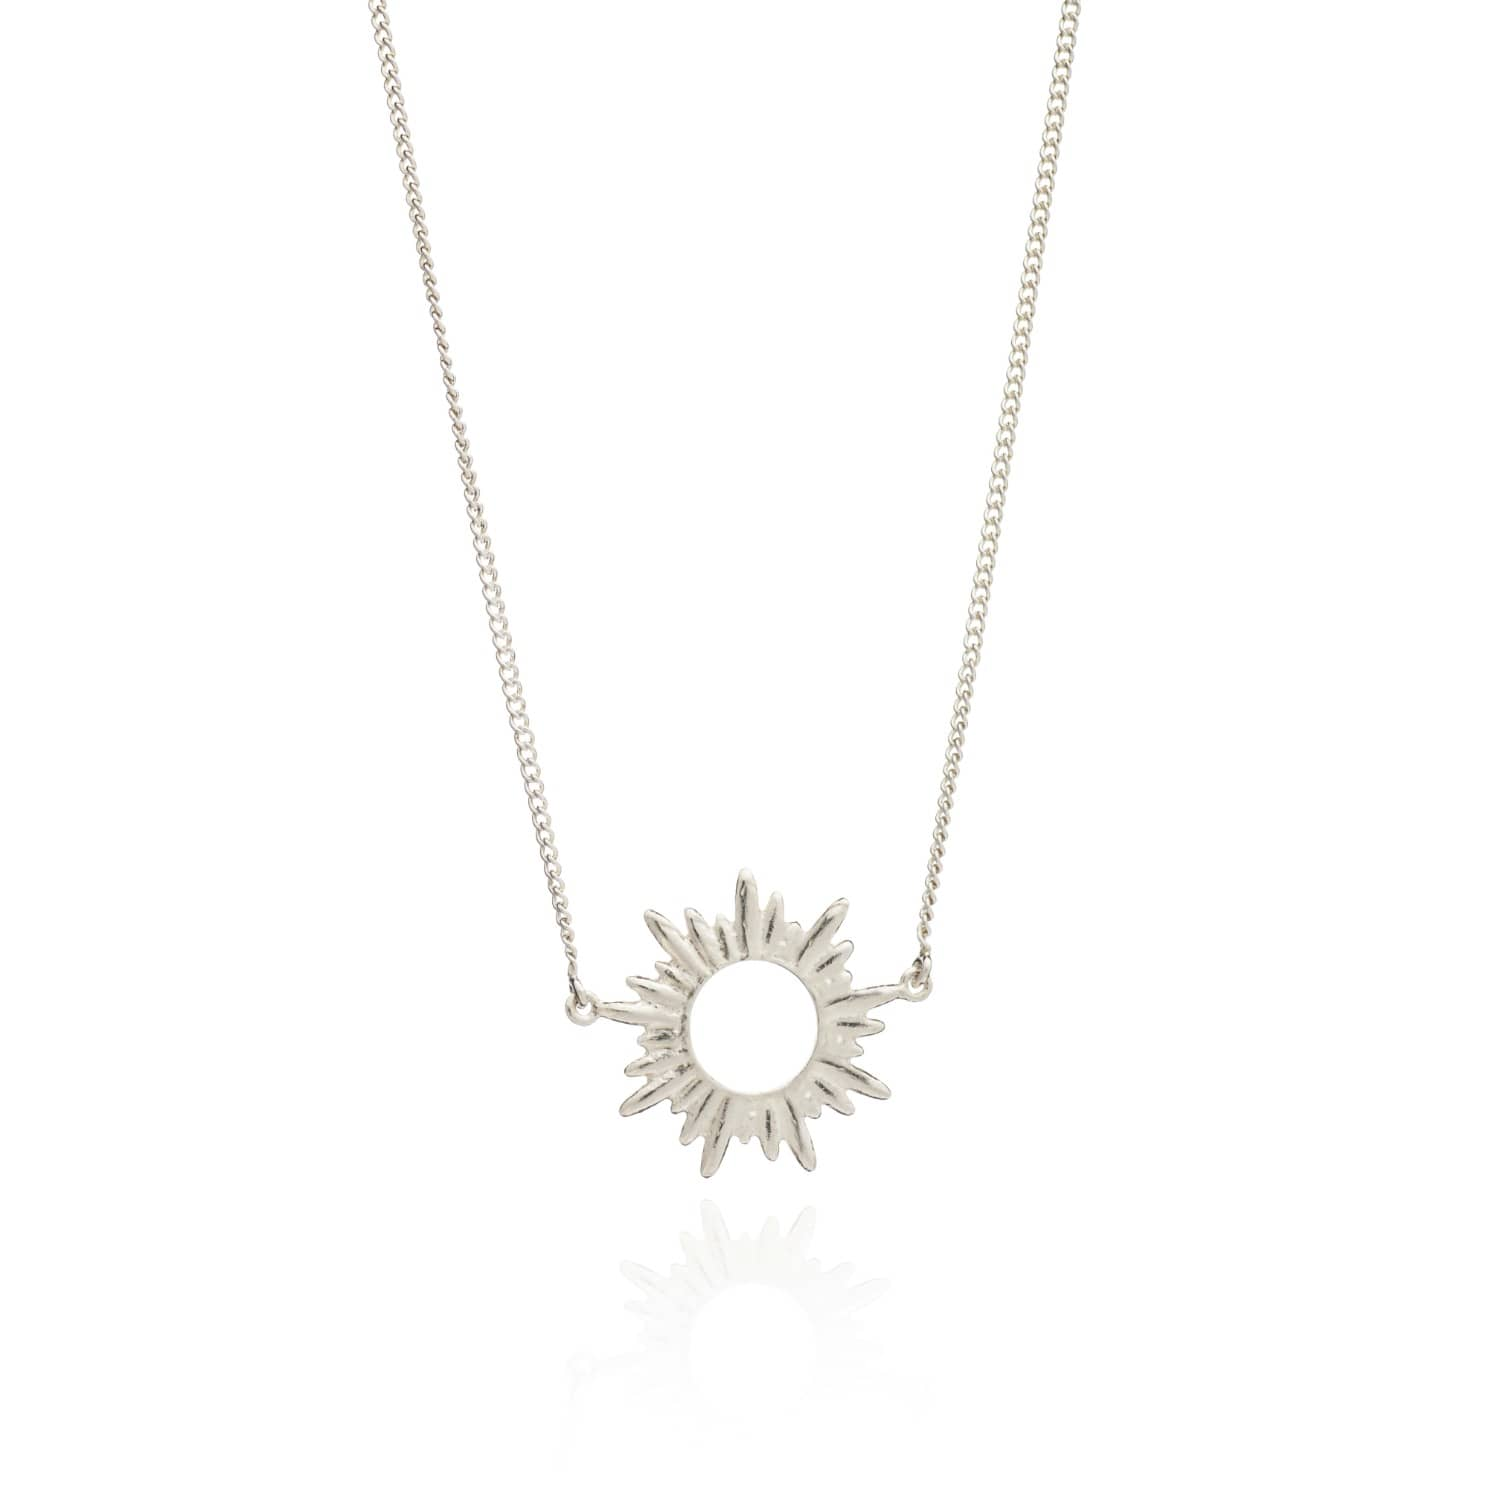 Art Deco Style Jewelry Boxes Sunrays Short Necklace In Silver By Rachel Jackson London